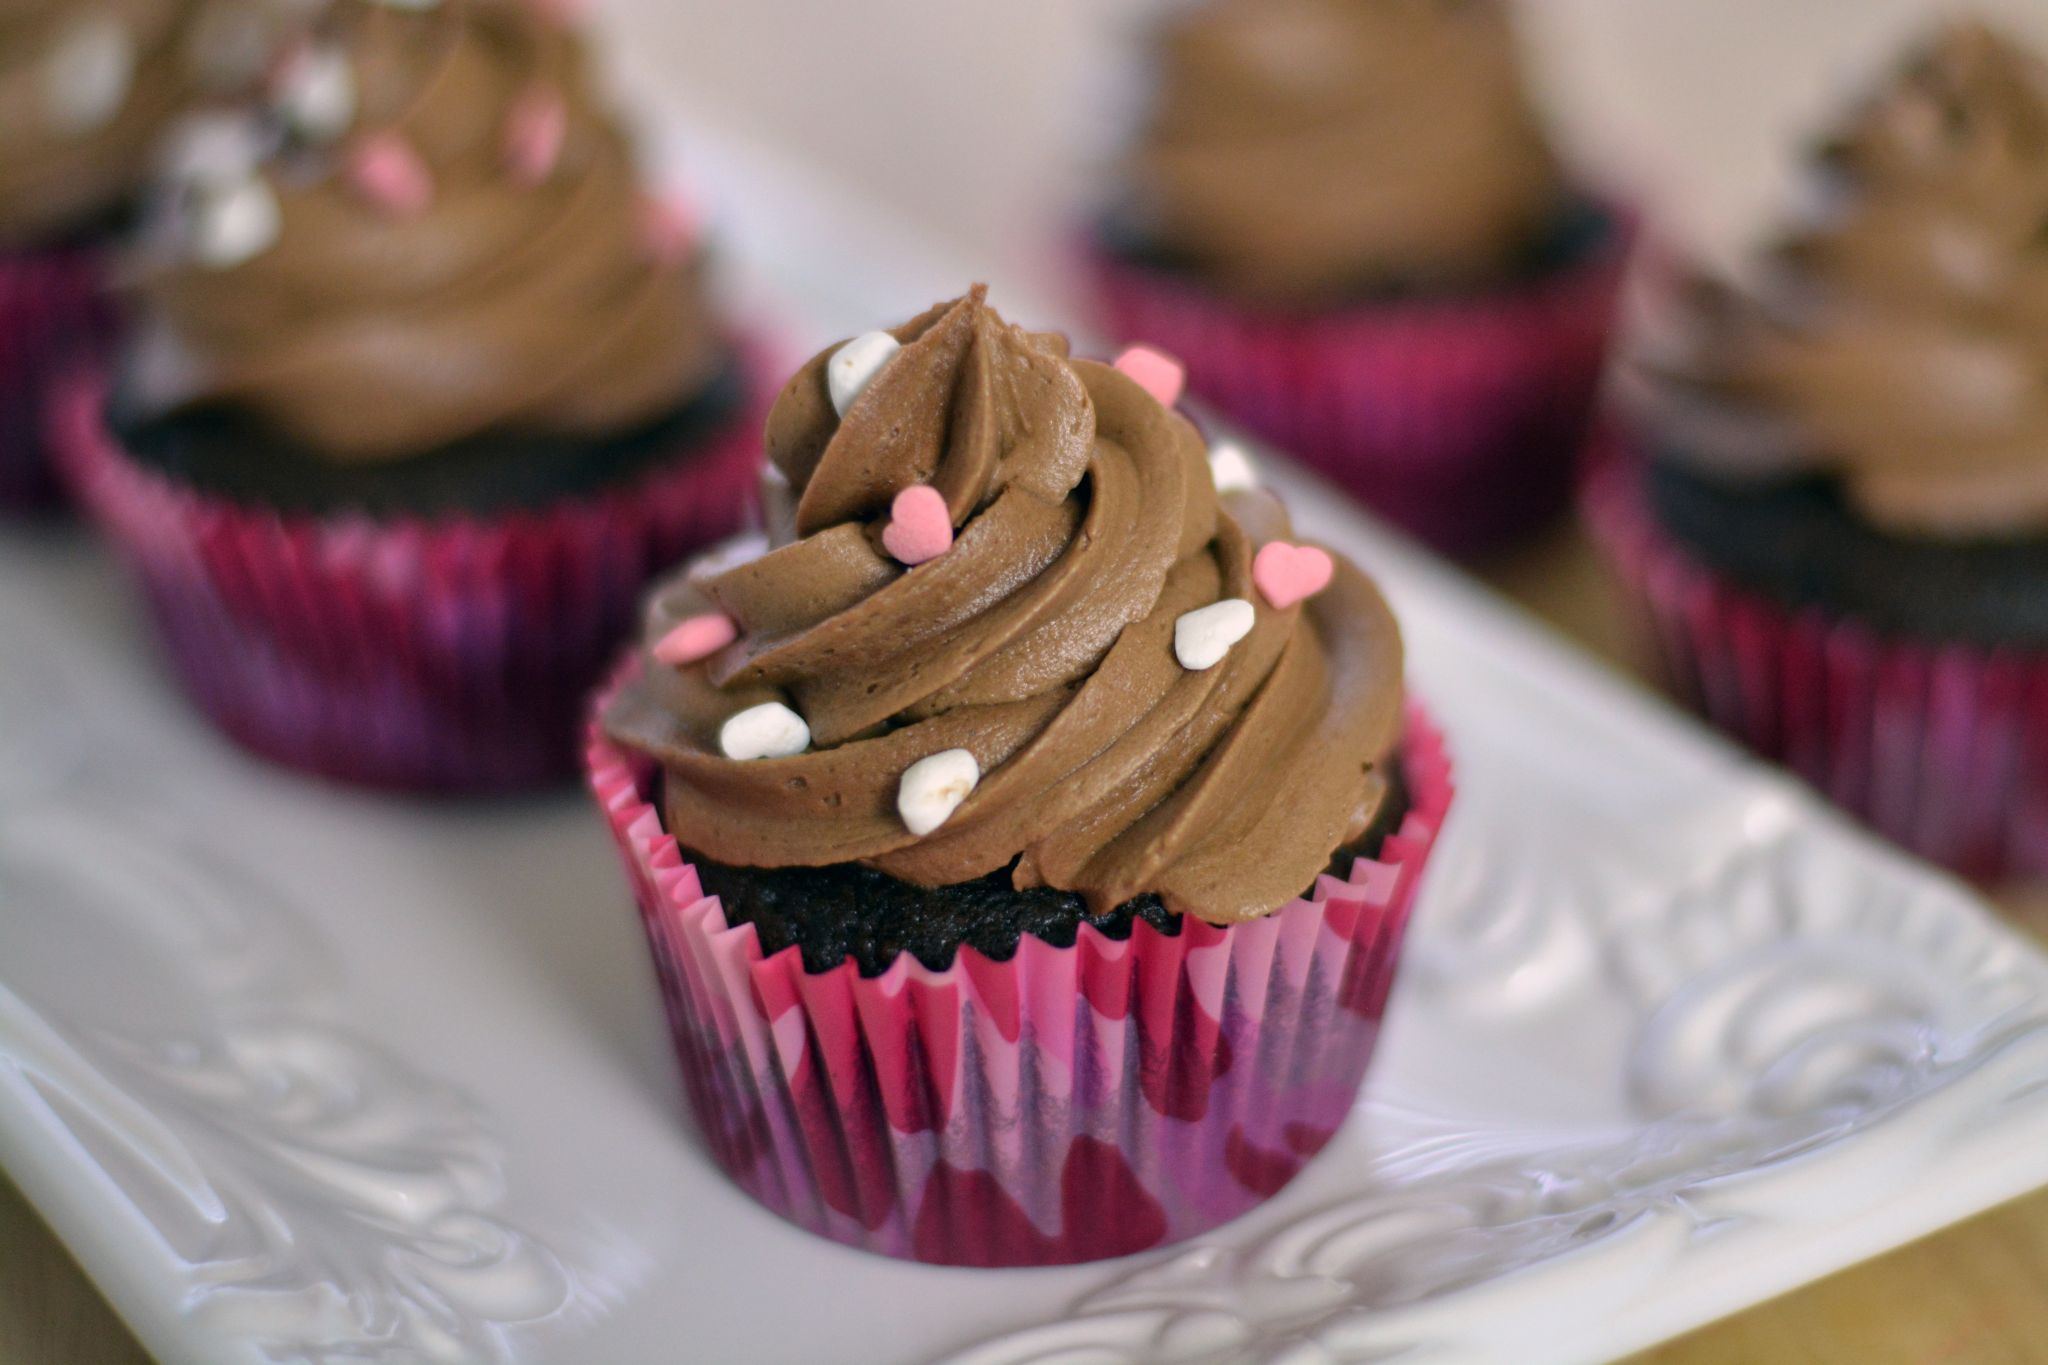 Cupcakes (Pastelitos) de Chocolate